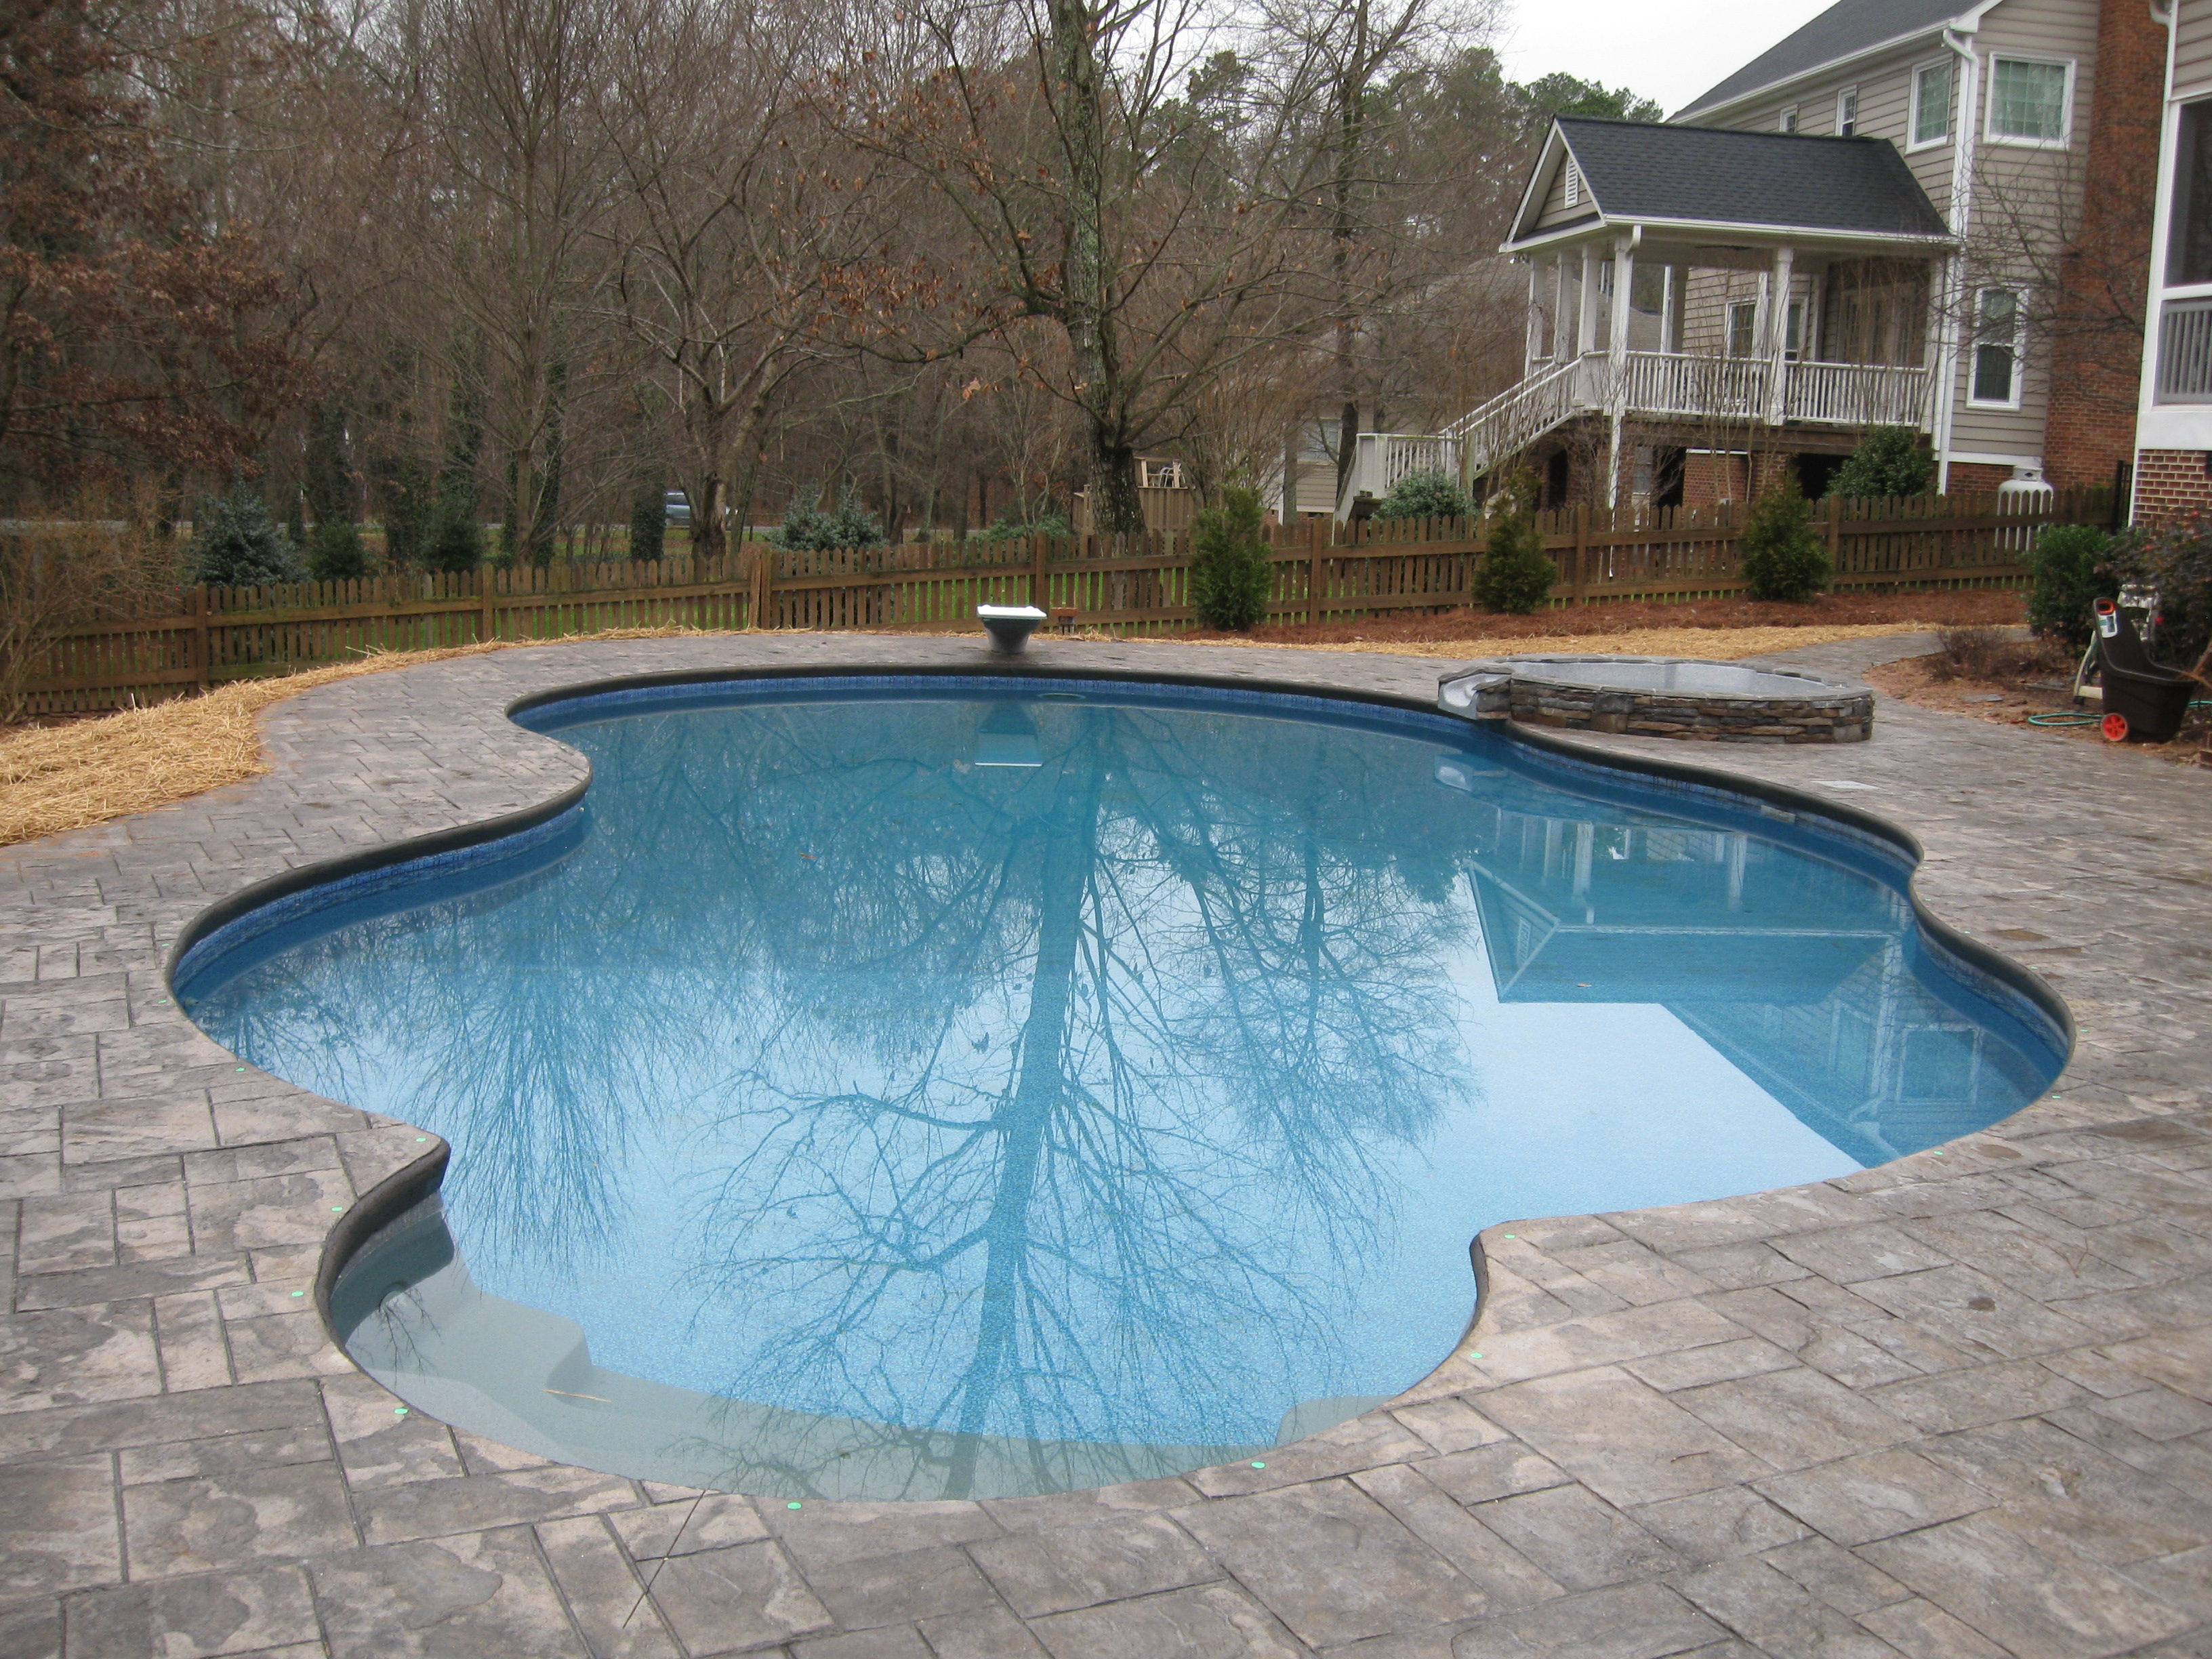 Oasis pools outdoor living in raleigh nc 27612 for Garden oases pool